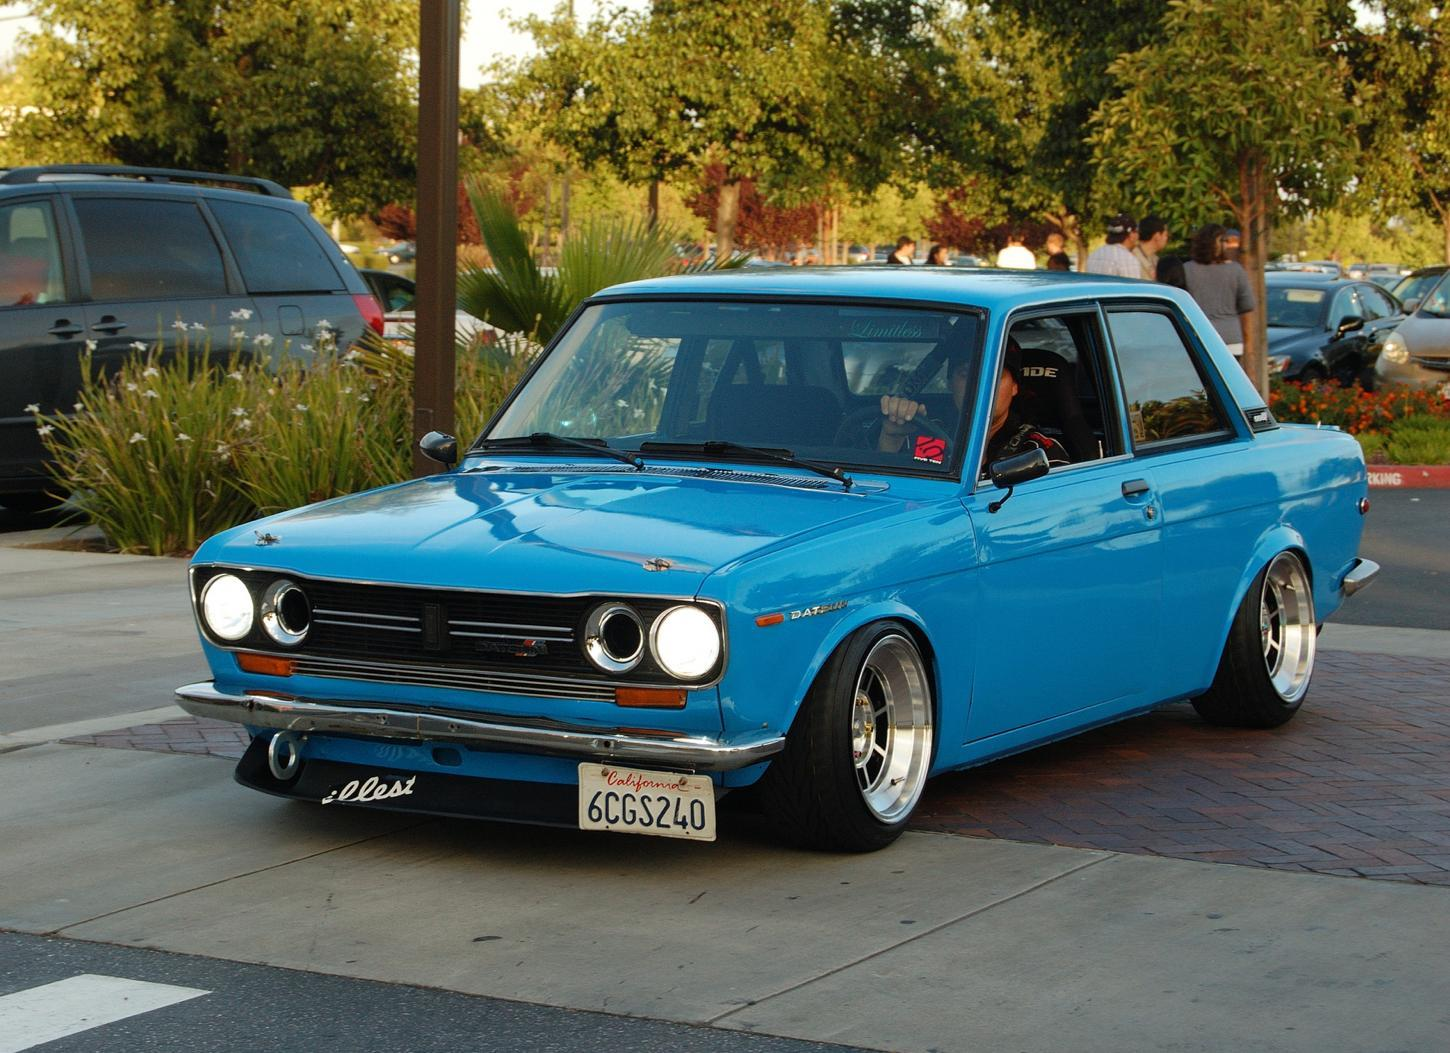 Datsun 510 Wallpapers - Wallpaper Cave